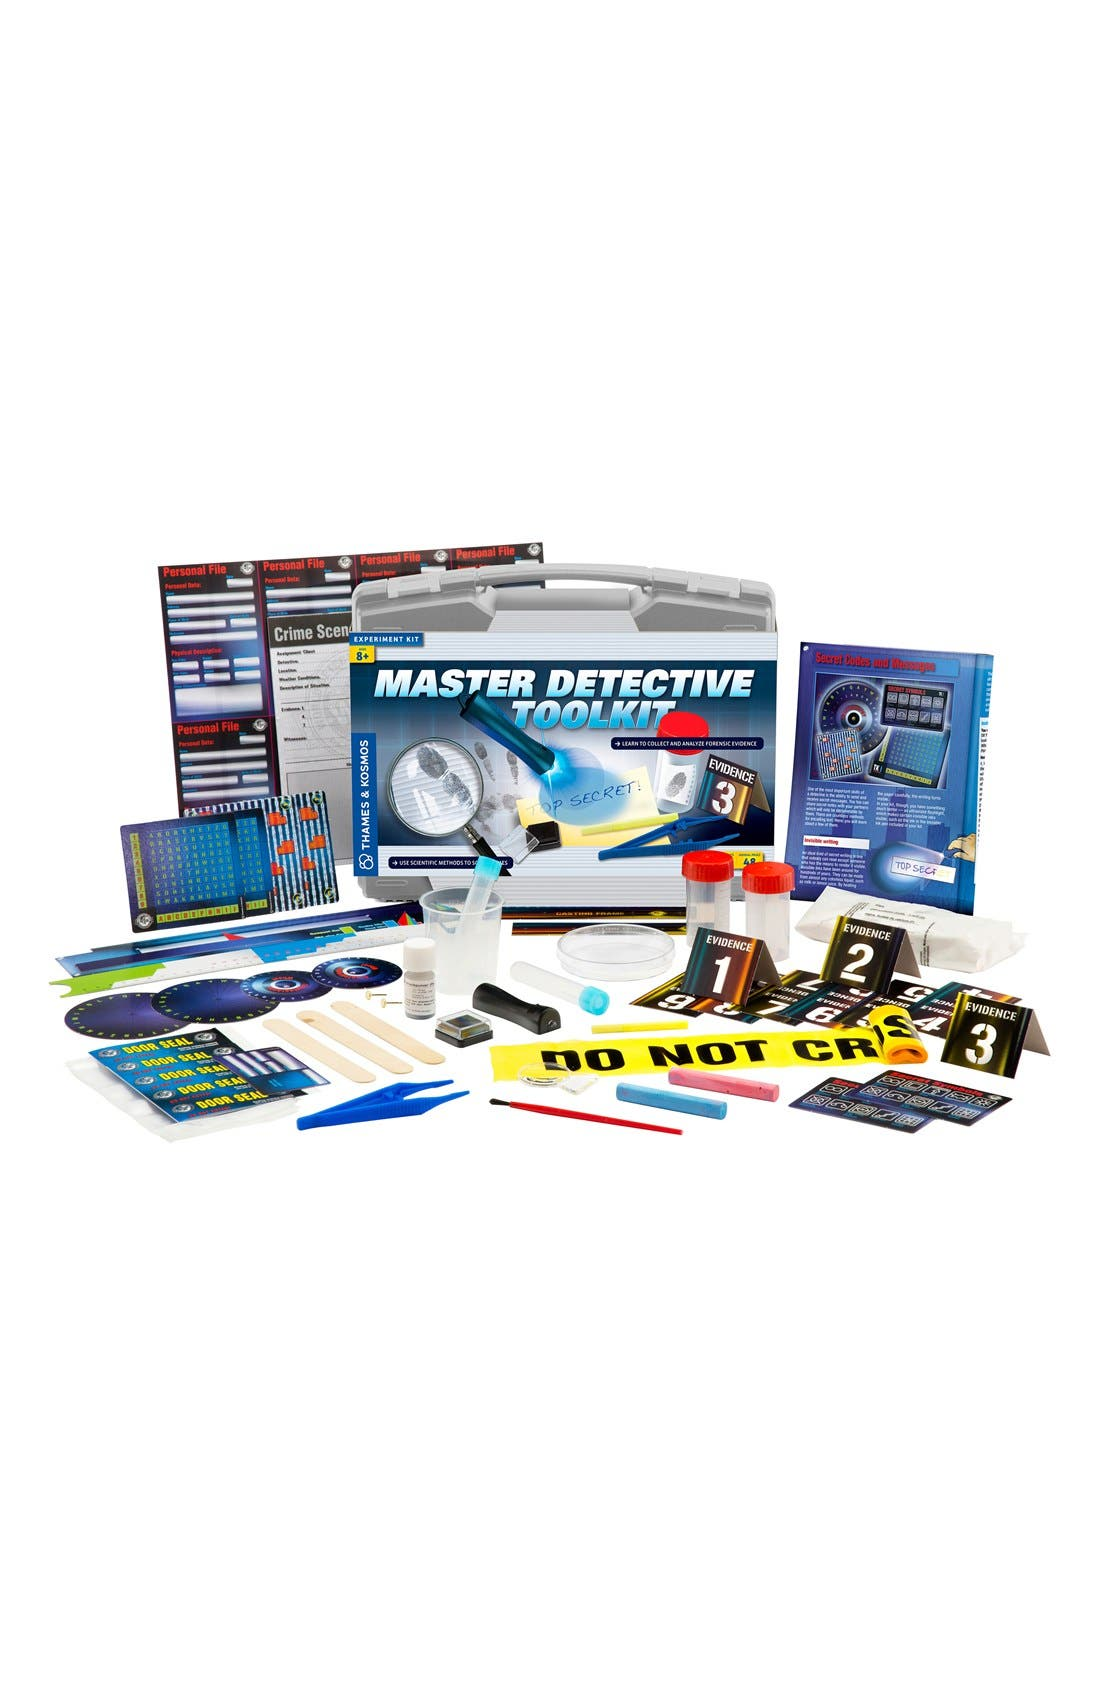 'Master Detective Toolkit' Experiment Kit,                             Alternate thumbnail 3, color,                             Grey